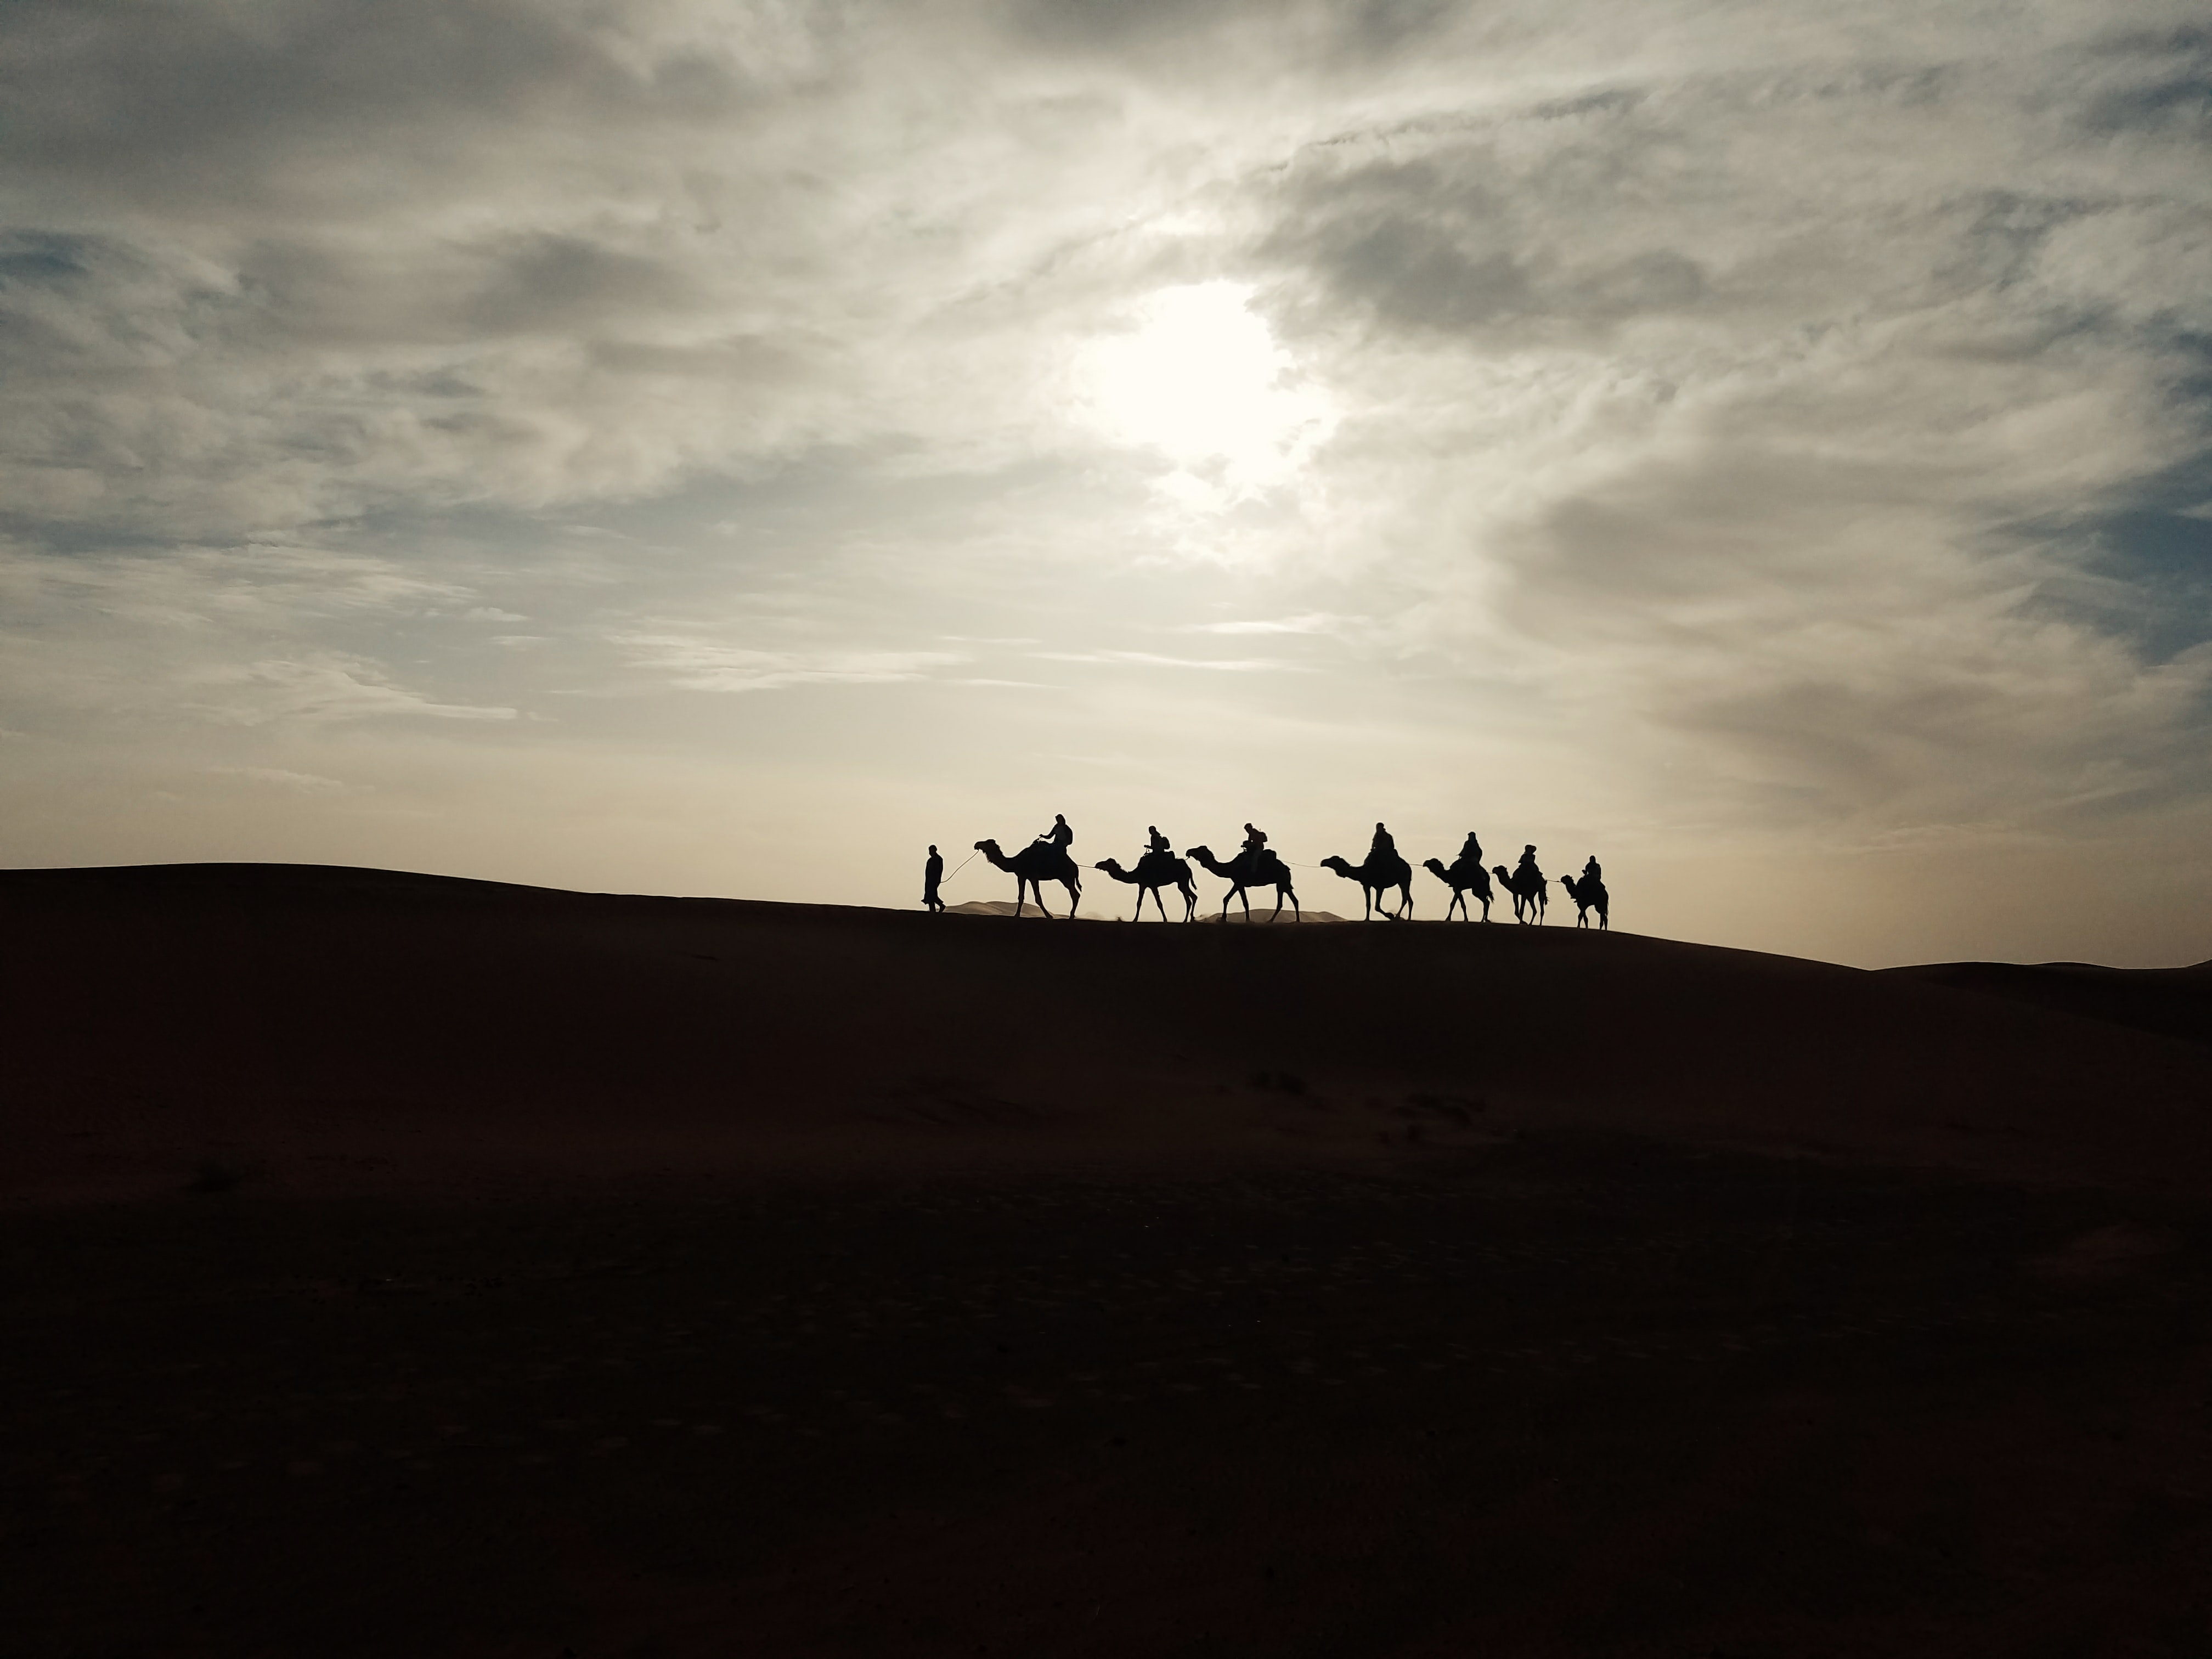 silhouette of person riding camel